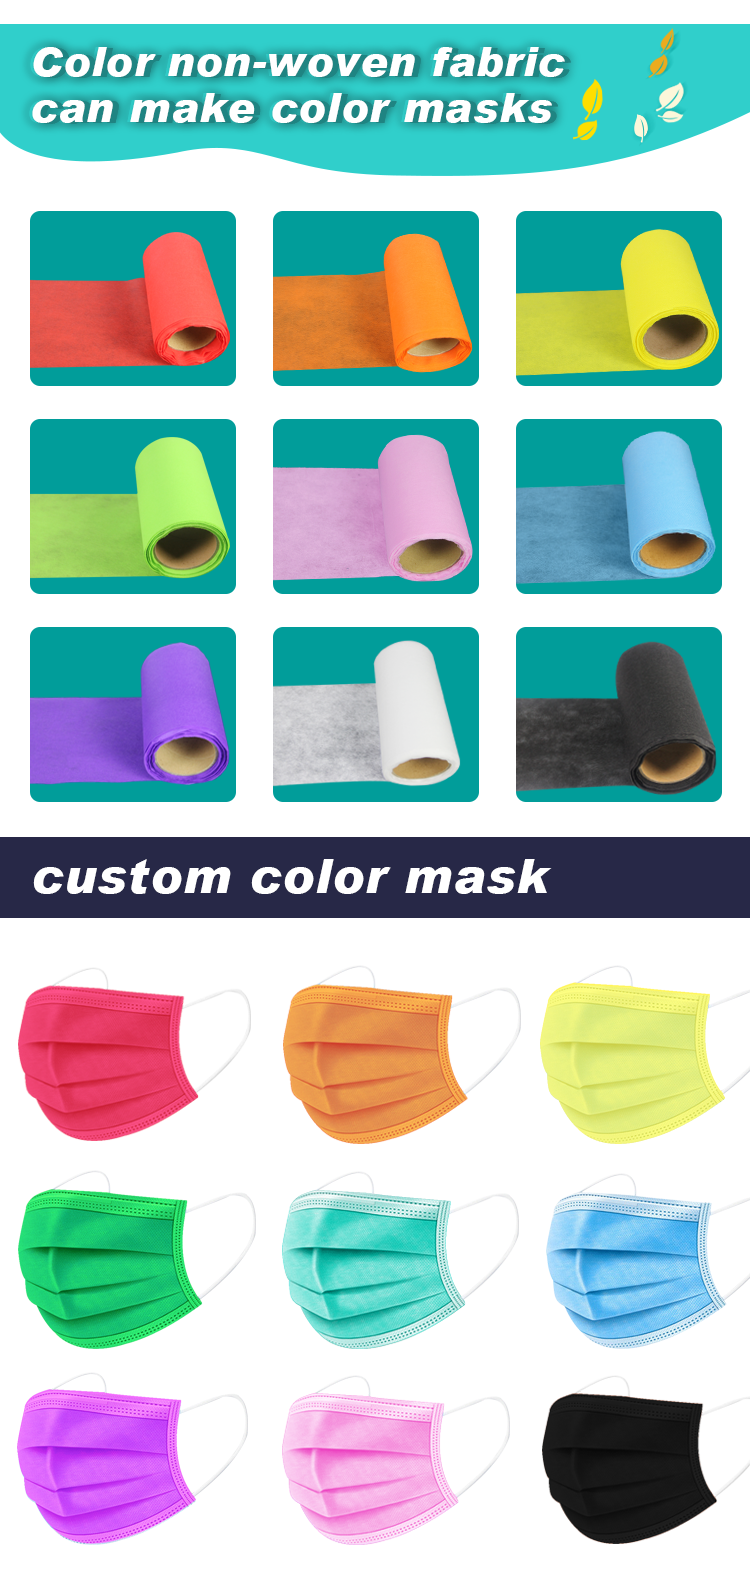 color non-wowen fabric can make color masks